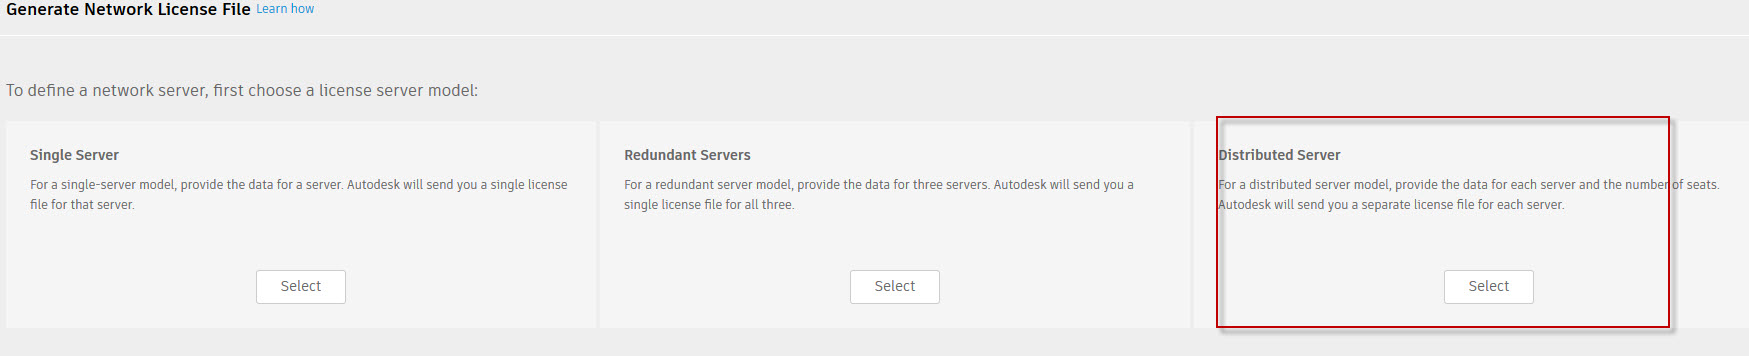 Solved: What license server model is in use - Autodesk